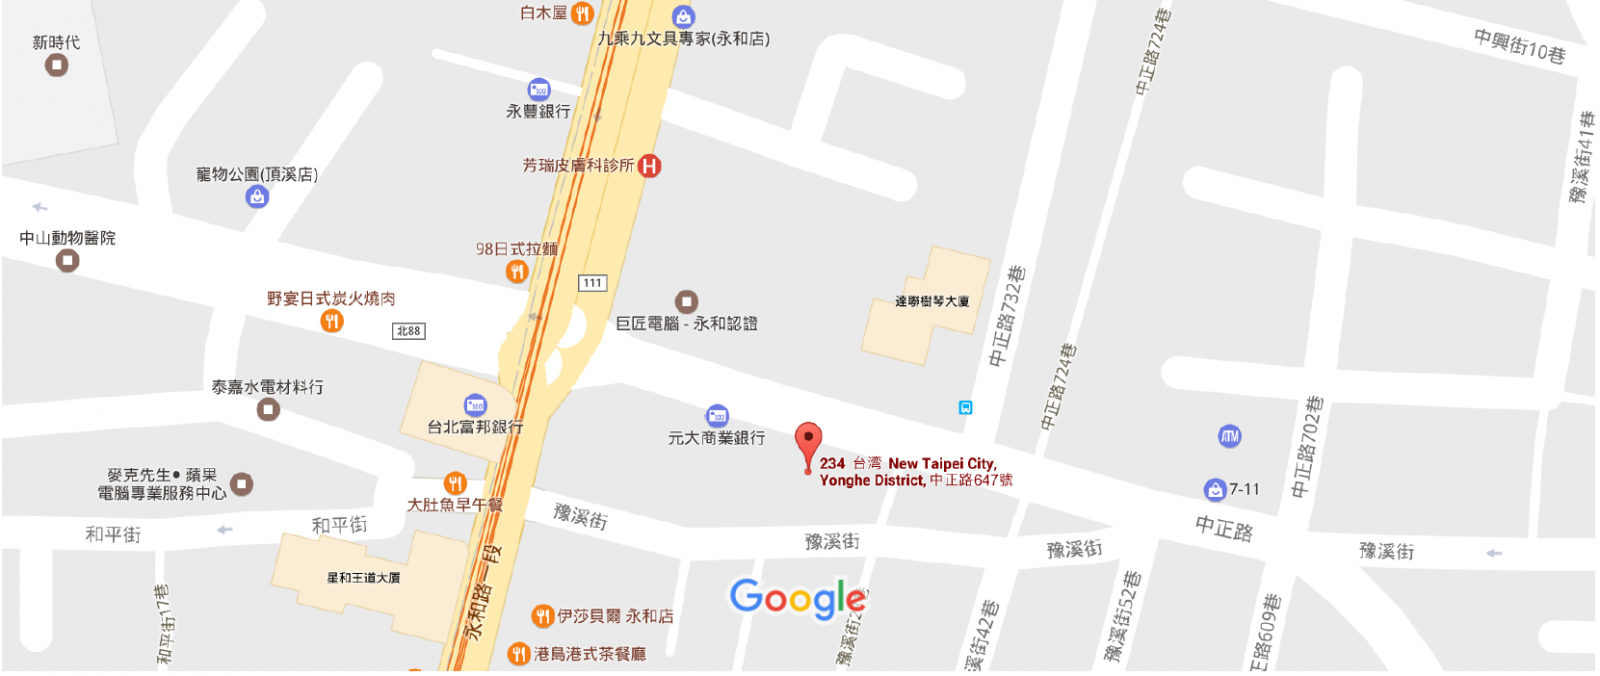 https://www.google.com.tw/maps/place/234,+New+Taipei+City,+Yonghe+District,+%E4%B8%AD%E6%AD%A3%E8%B7%AF647%E8%99%9F/@25.0108716,121.5158429,15z/data=!4m5!3m4!1s0x3442a9e9c276832d:0xdc348b4ddbb198a7!8m2!3d25.0100179!4d121.5151443